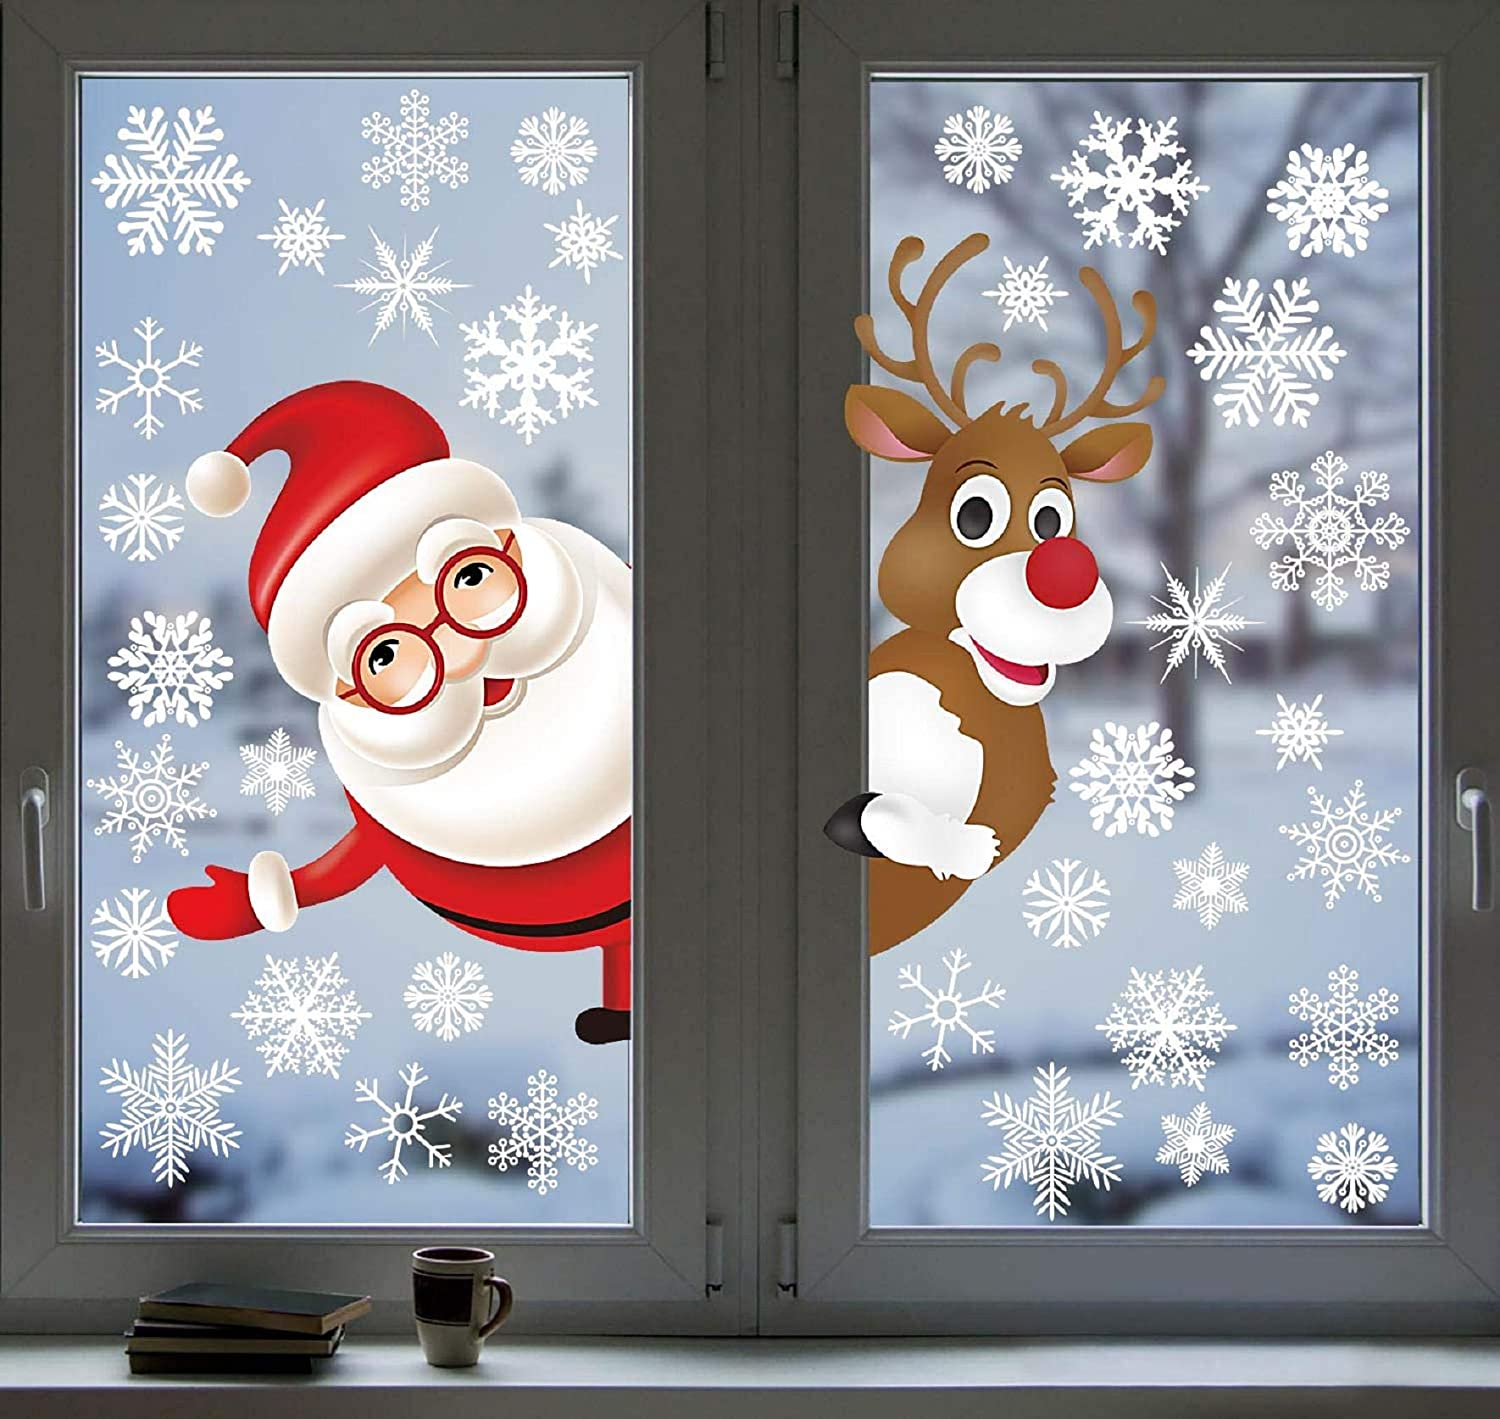 New products Challenge the lowest price of Japan world's highest quality popular heekpek Christmas Window Decals White Snowflake Santa Clau Cling